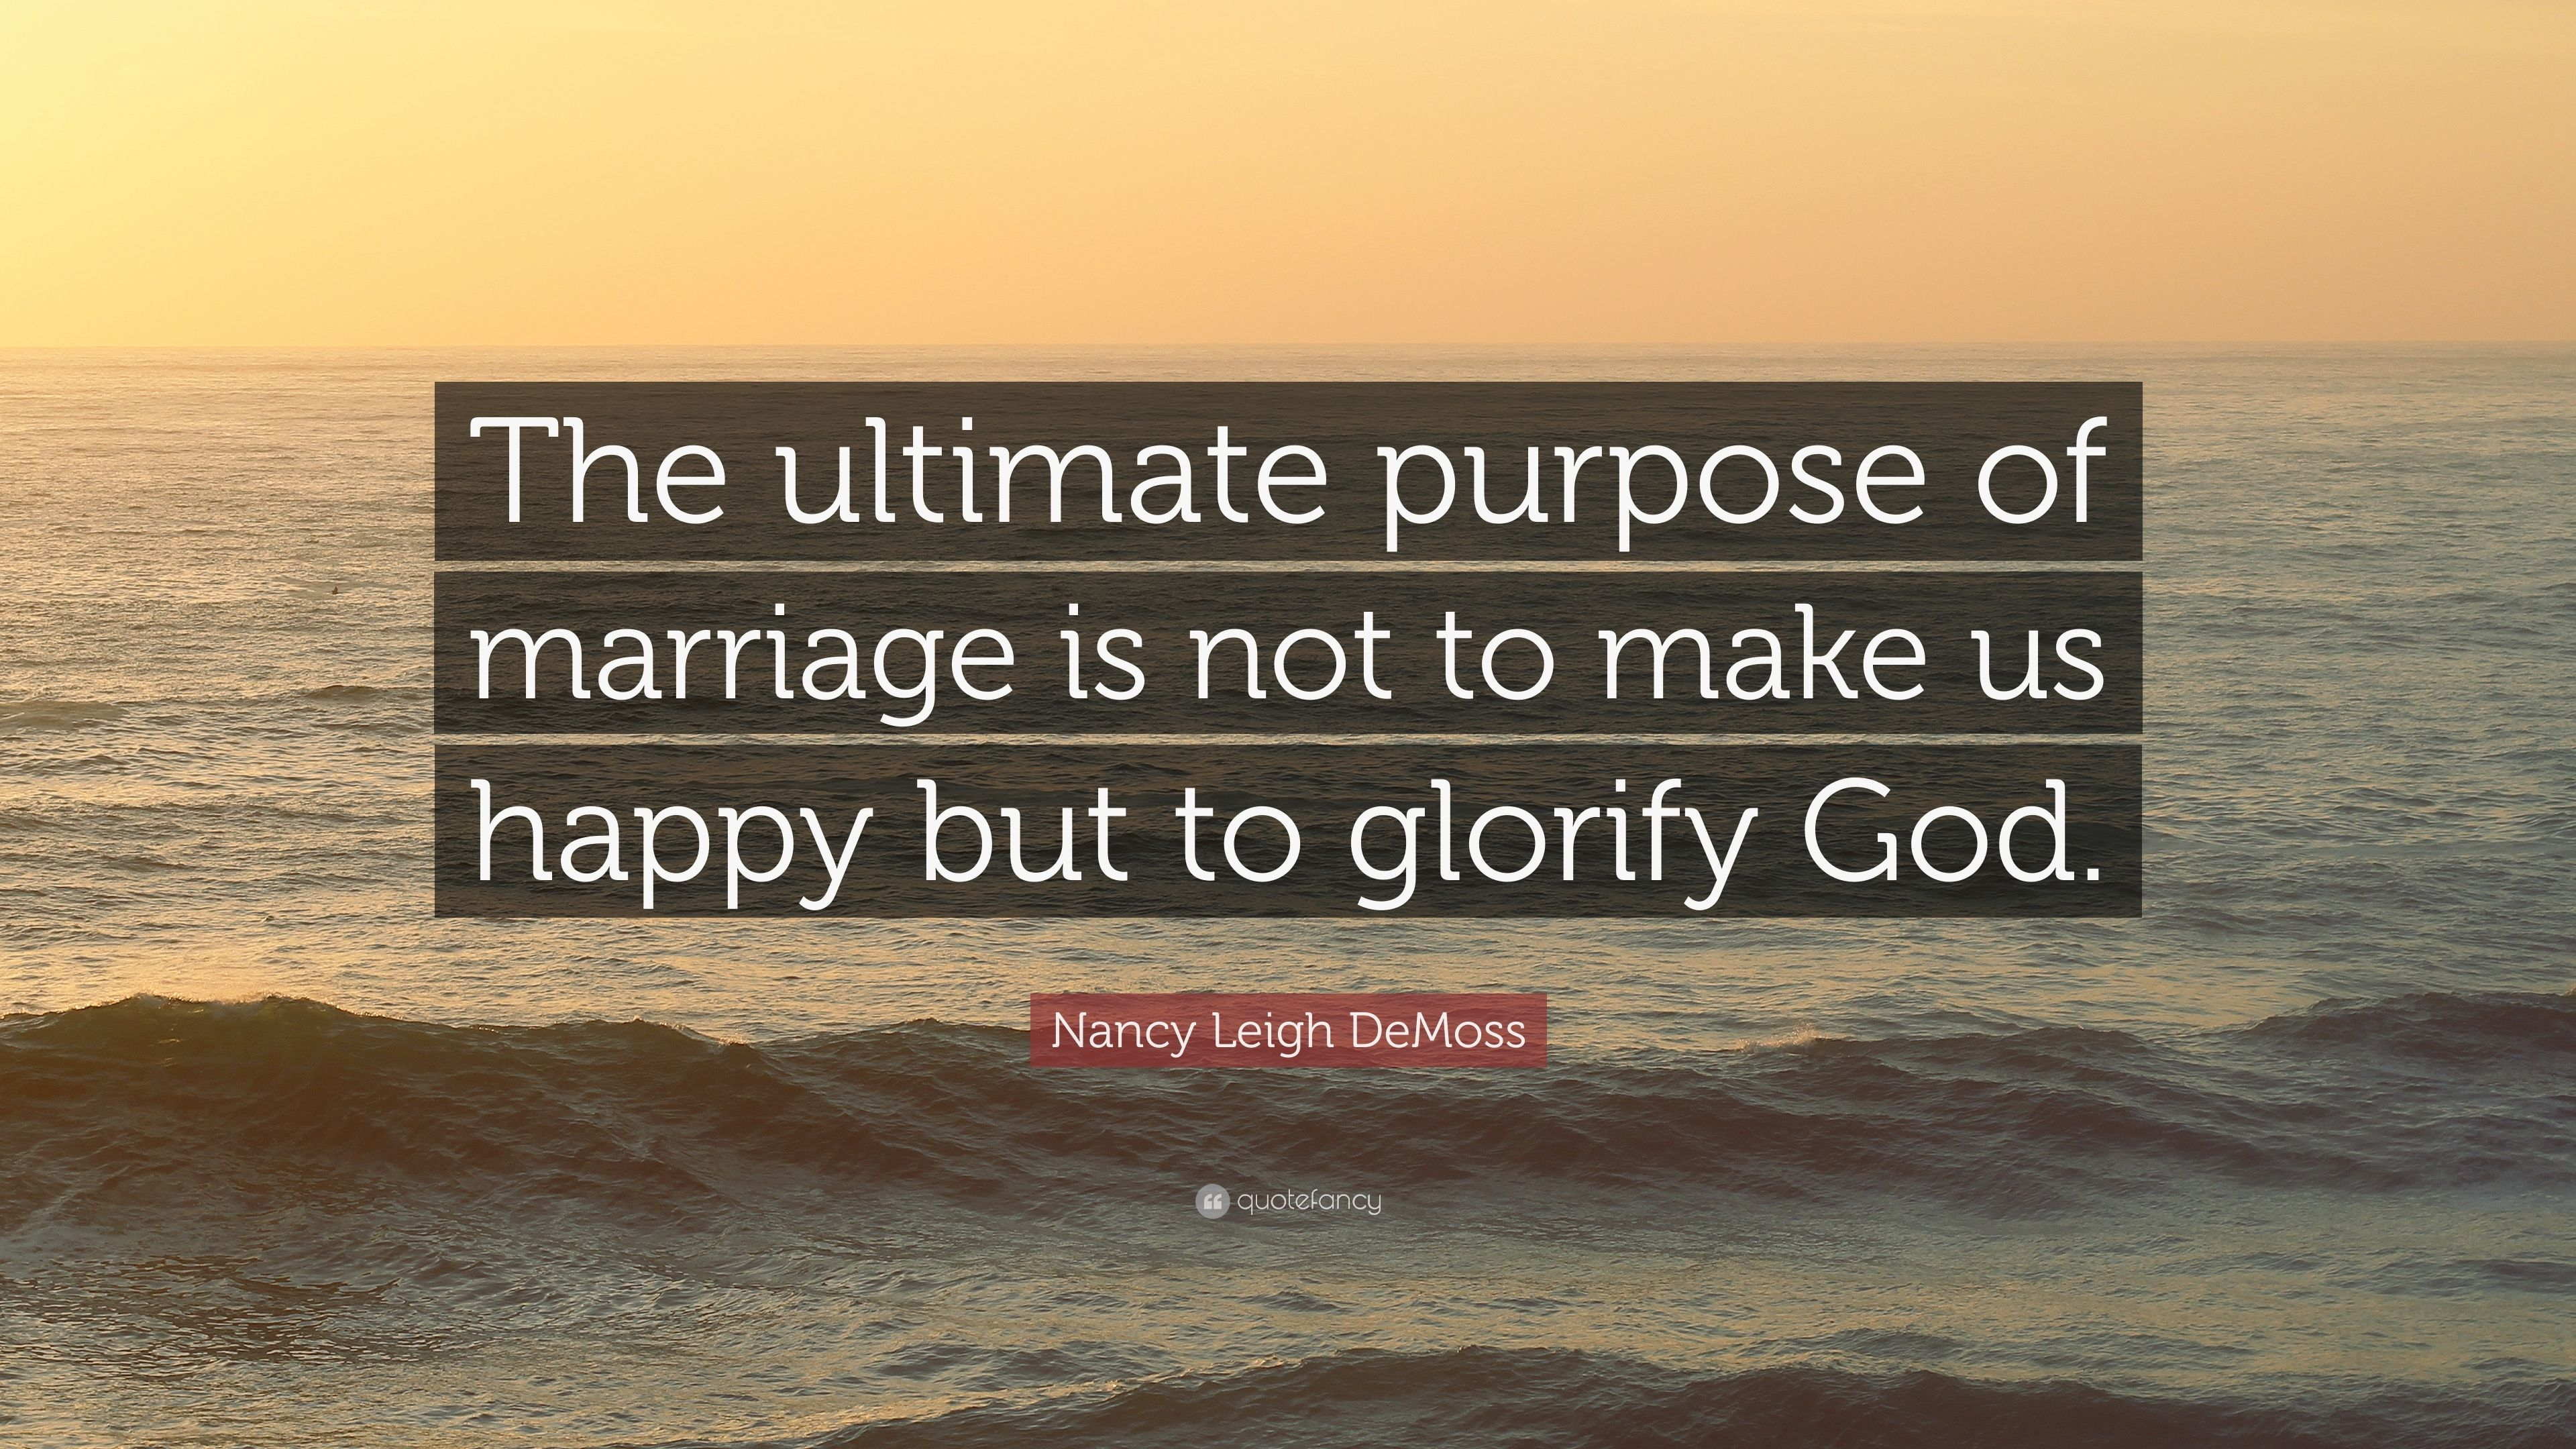 The ultimate purpose marriage